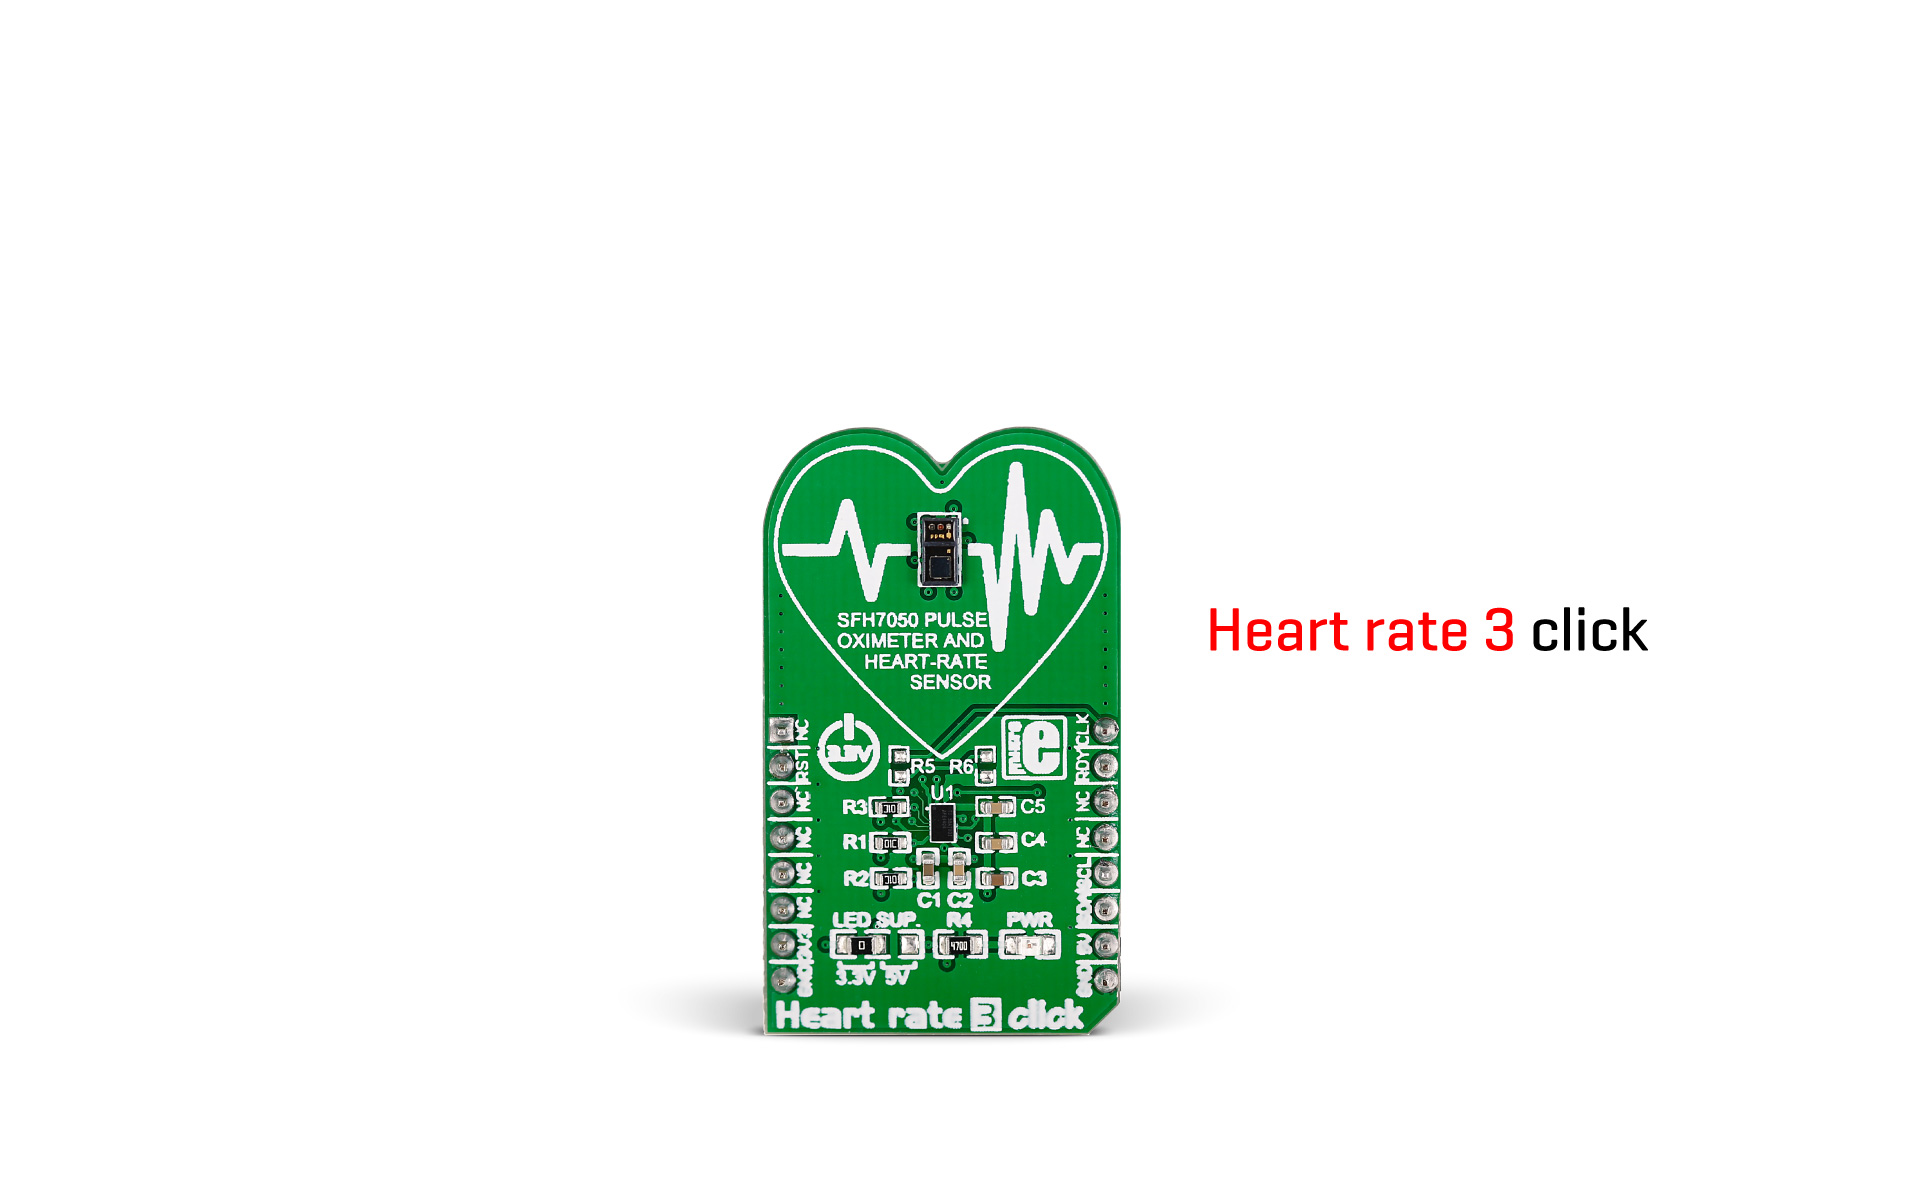 Heart rate 3 click released